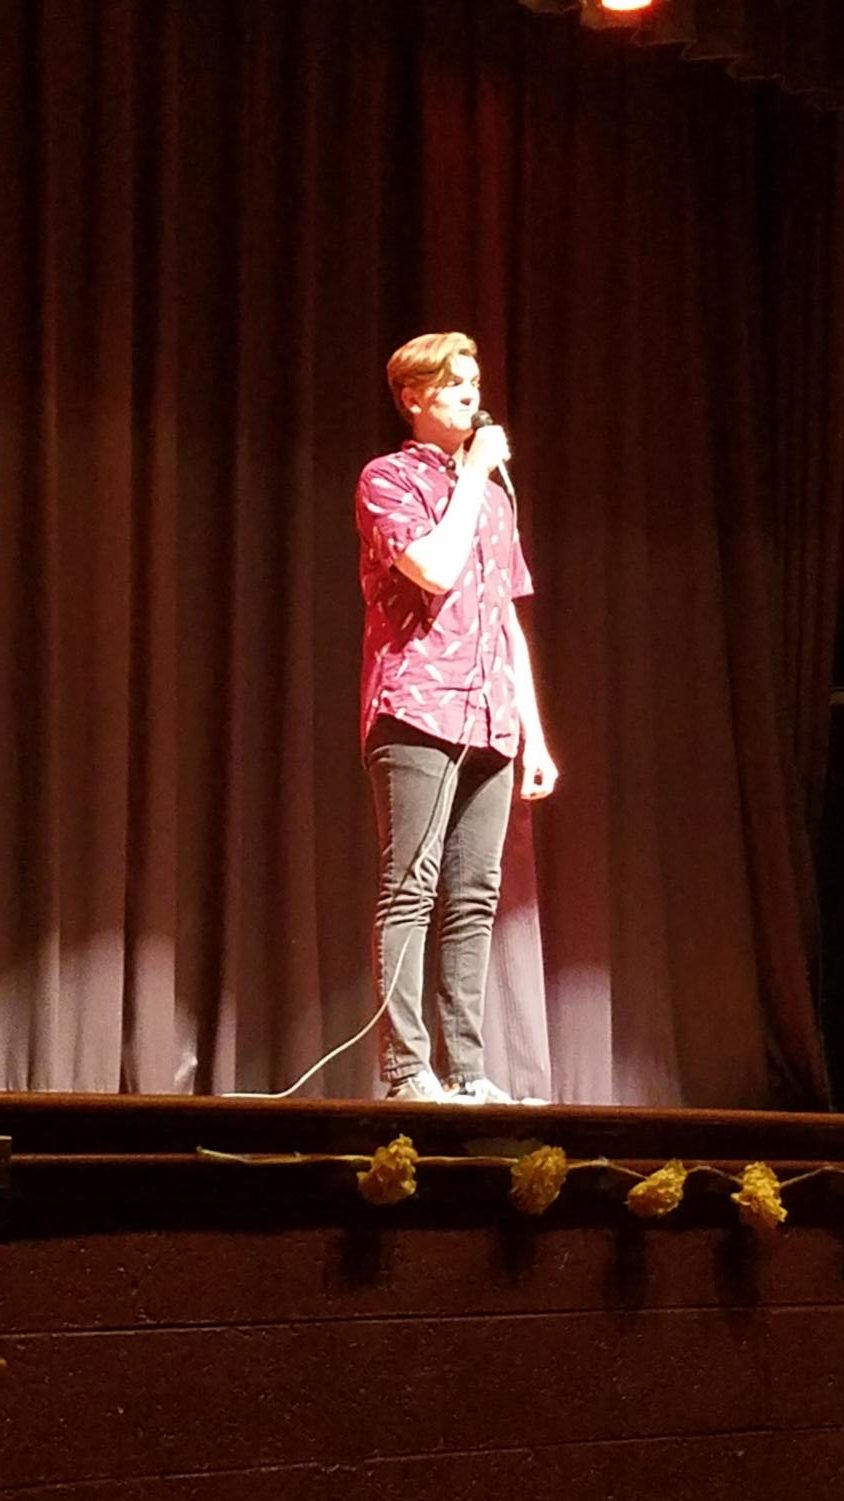 Brian Fisher's amazing voice won first place in this year's talent show.